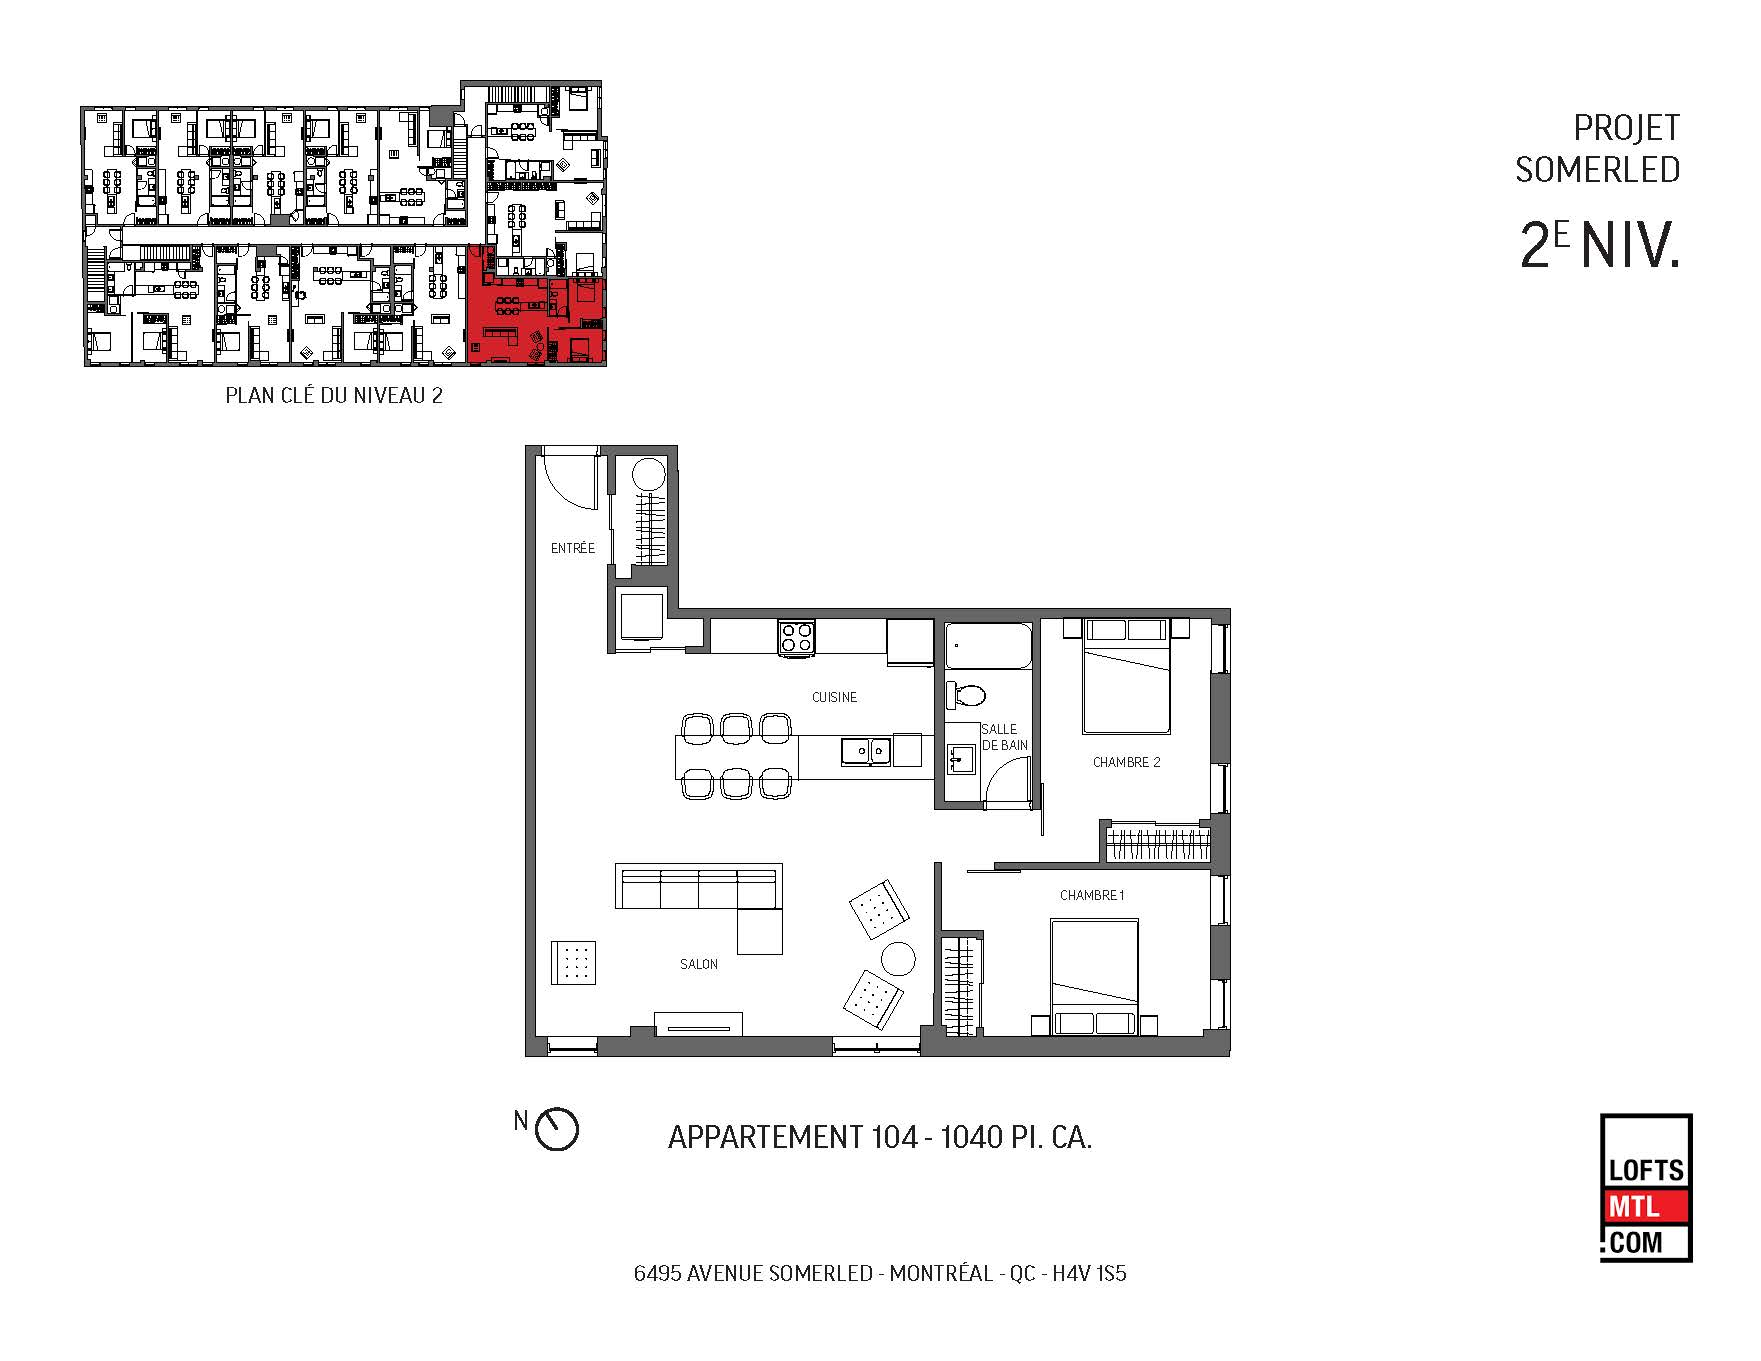 Plans appartements vectoriel Somerled_Page_04.jpg